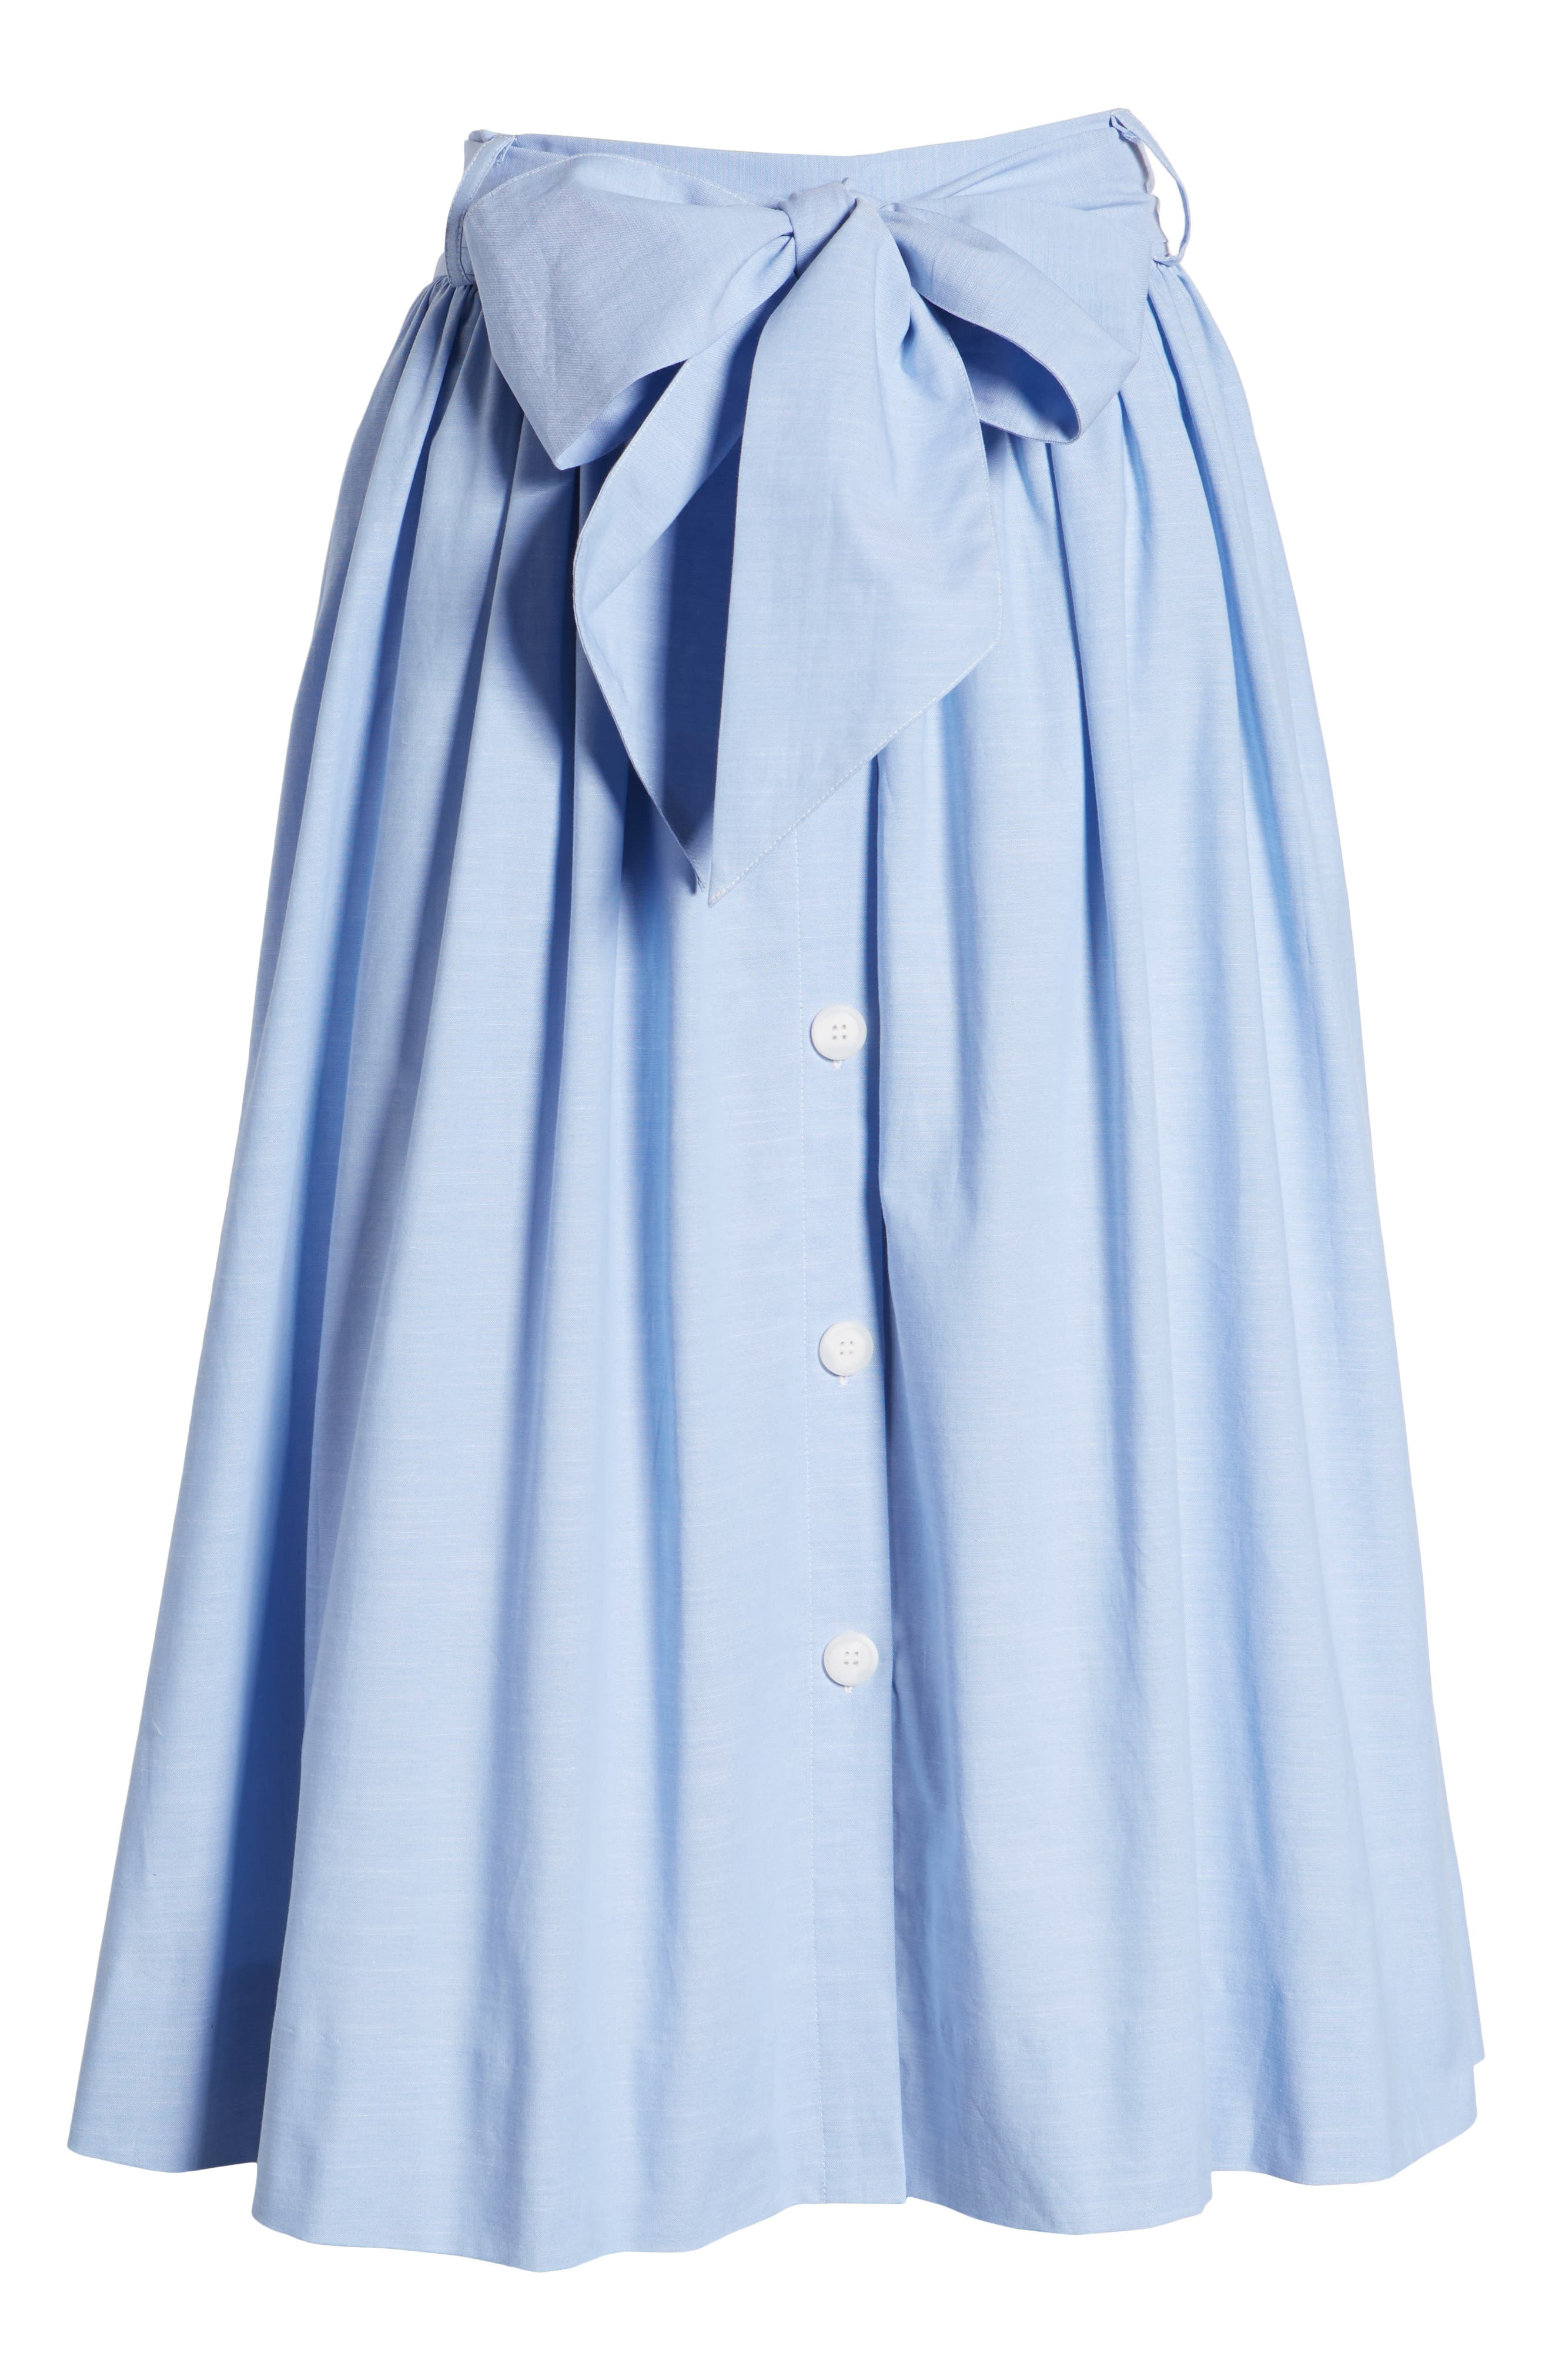 1901,                             Bow Tie Chambray Skirt,                             Alternate thumbnail 7, color,                             420